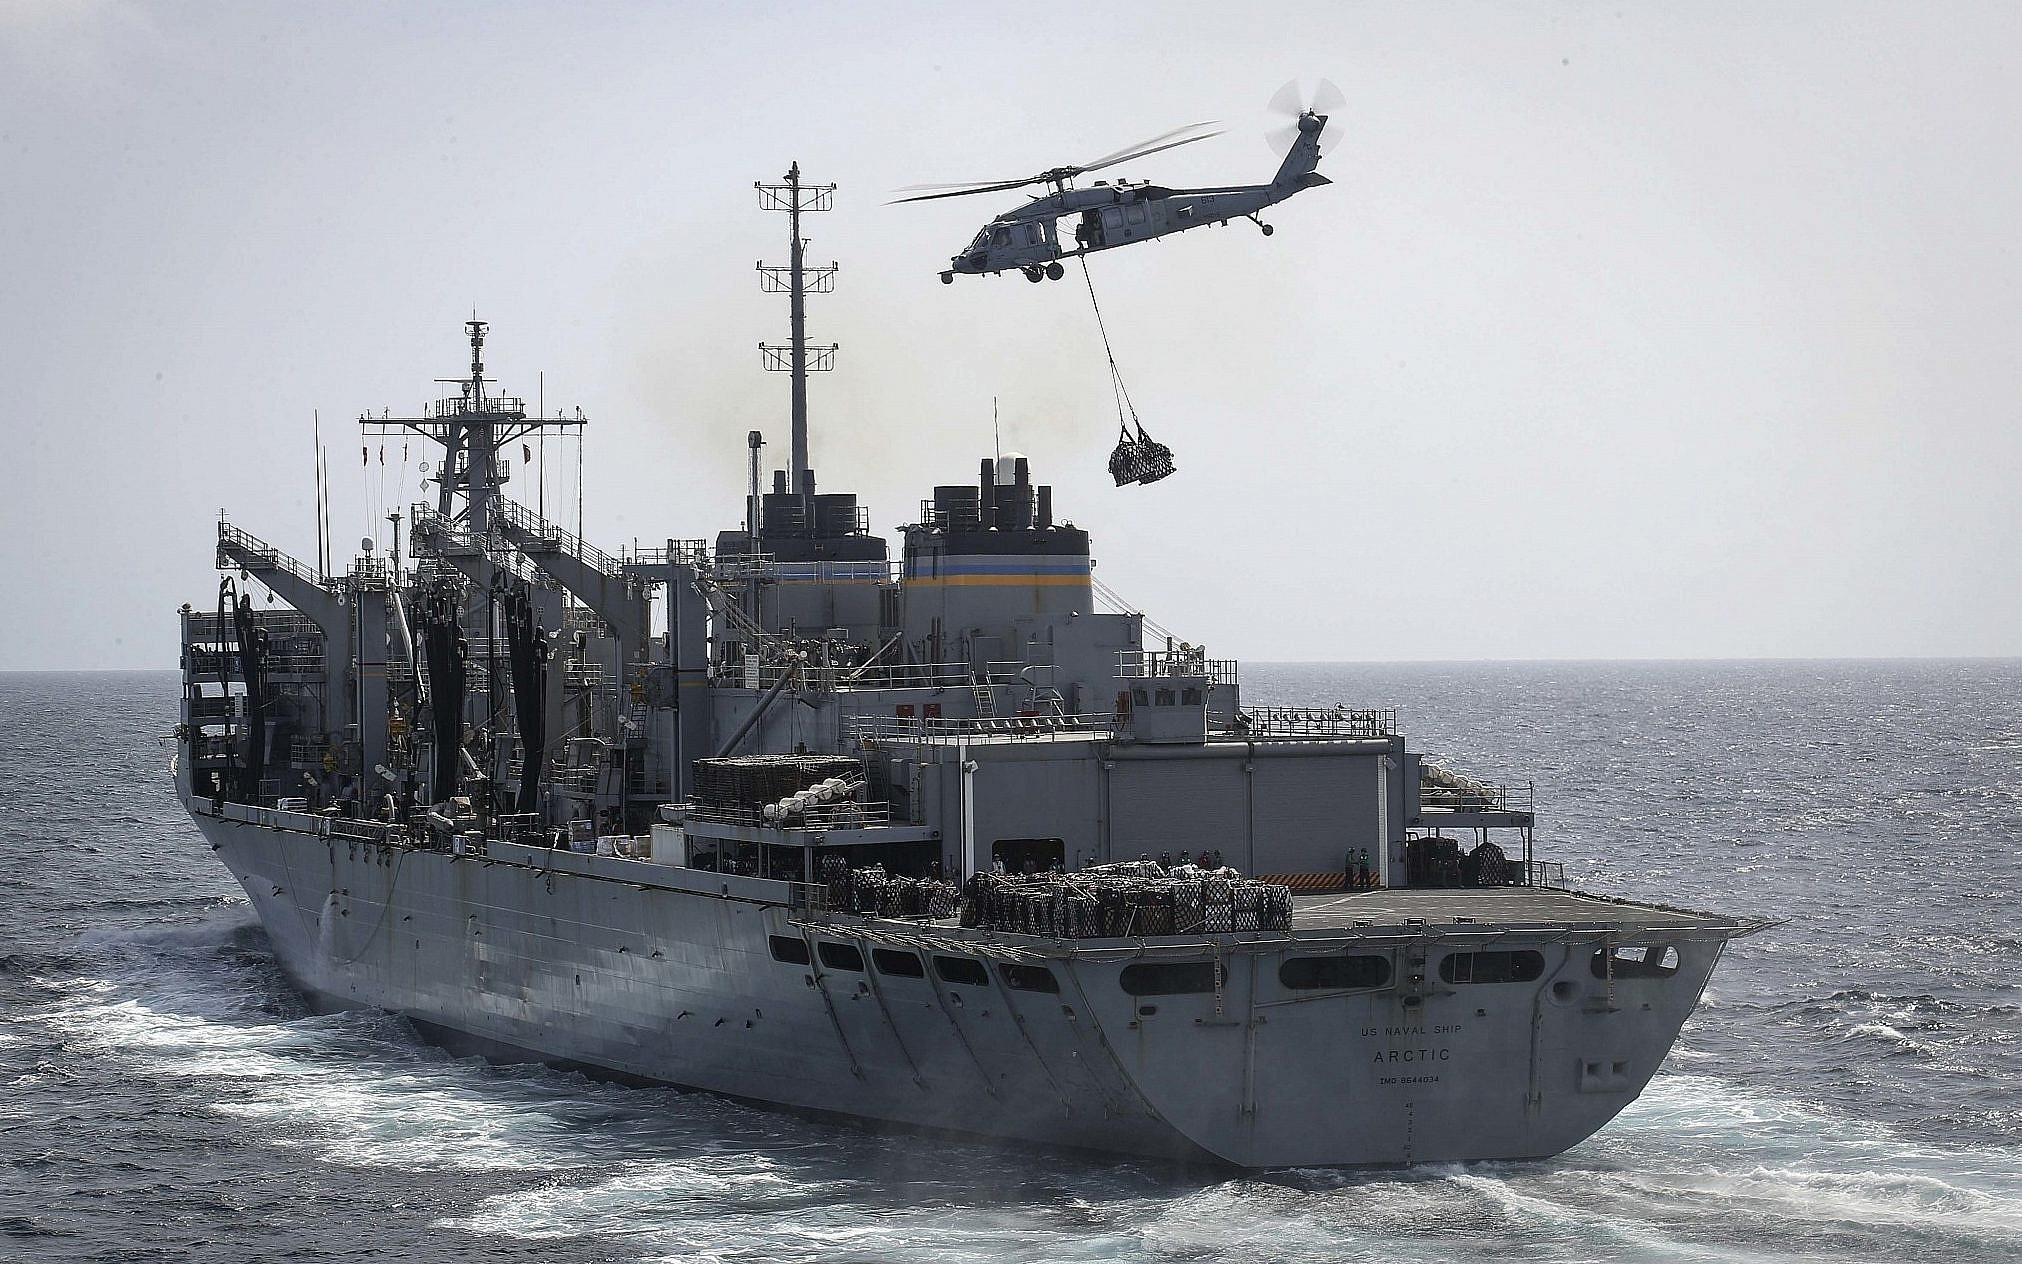 An MH-60S Sea Hawk helicopter transports cargo from the fast combat support ship USNS Arctic to the Nimitz-class aircraft carrier USS Abraham Lincoln during a replenishment-at-sea in the Arabian Sea (AP)